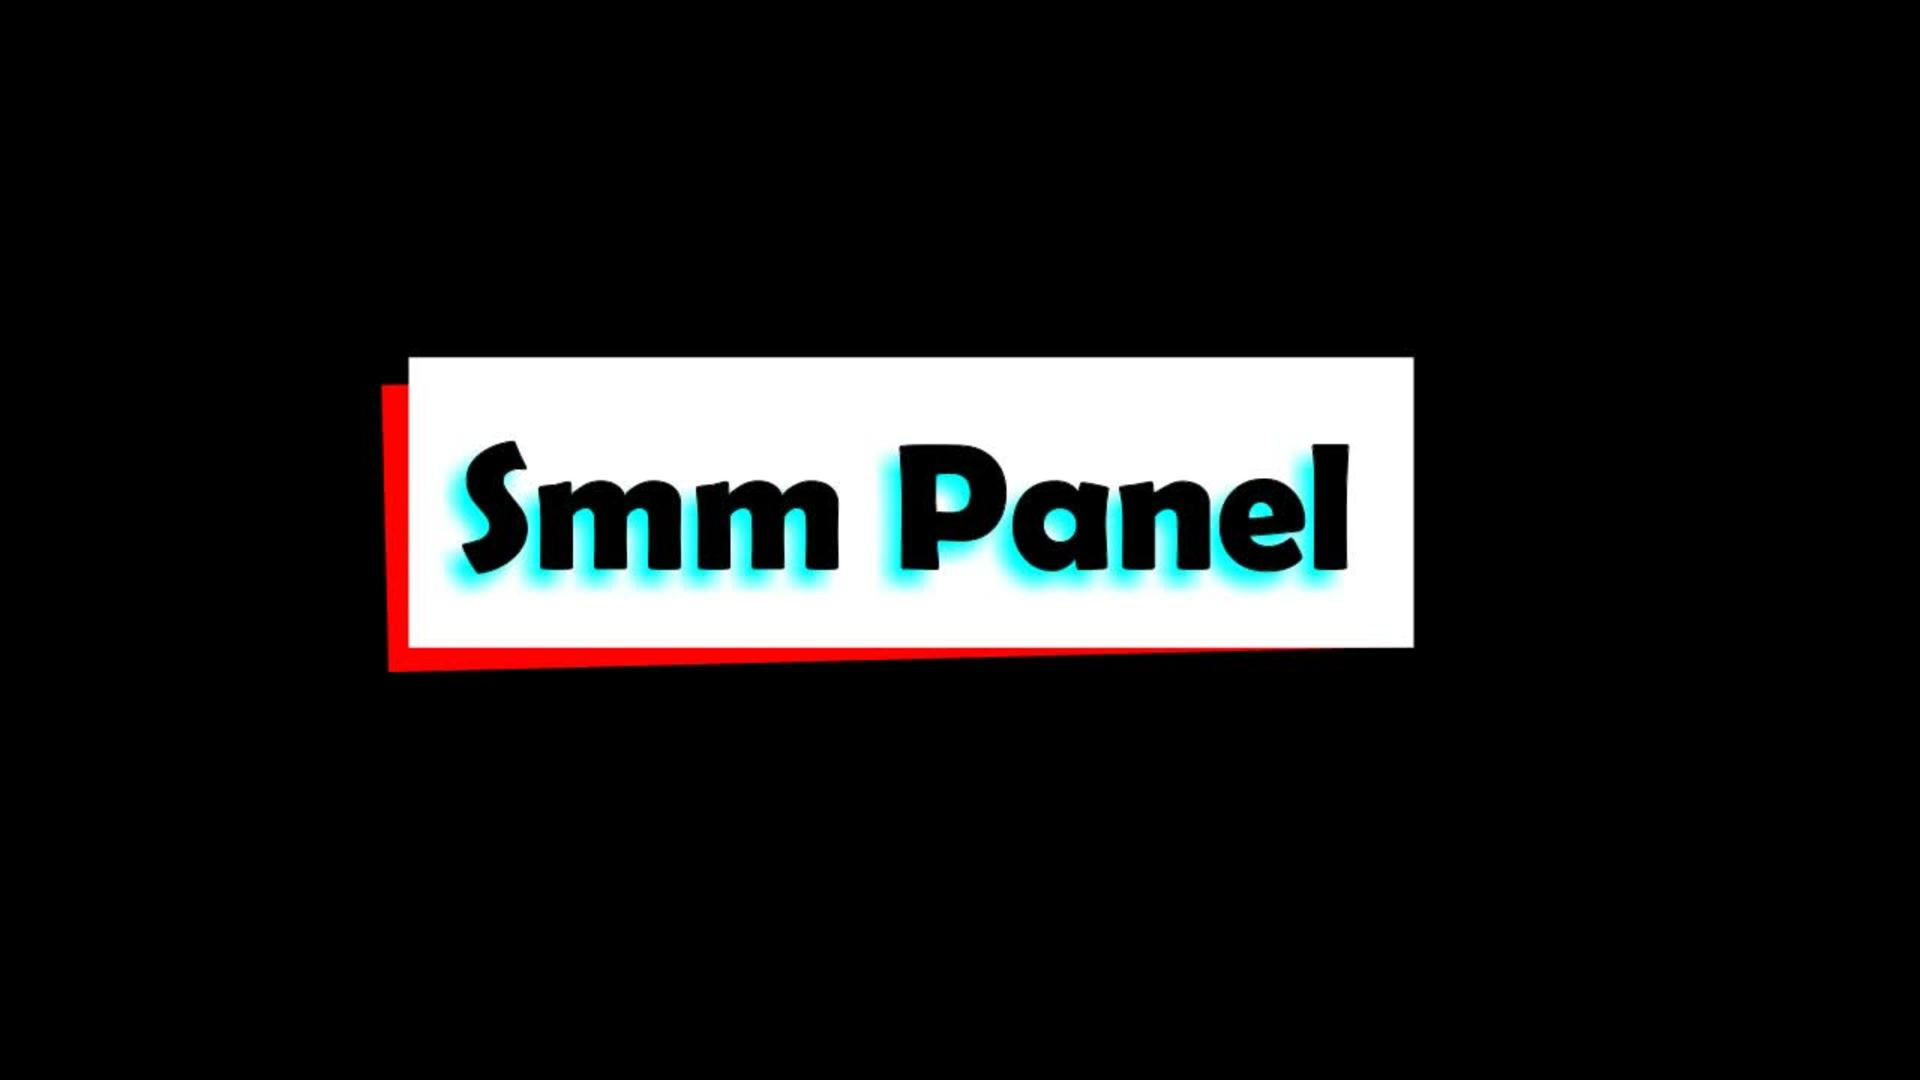 Why Use SMM Panel